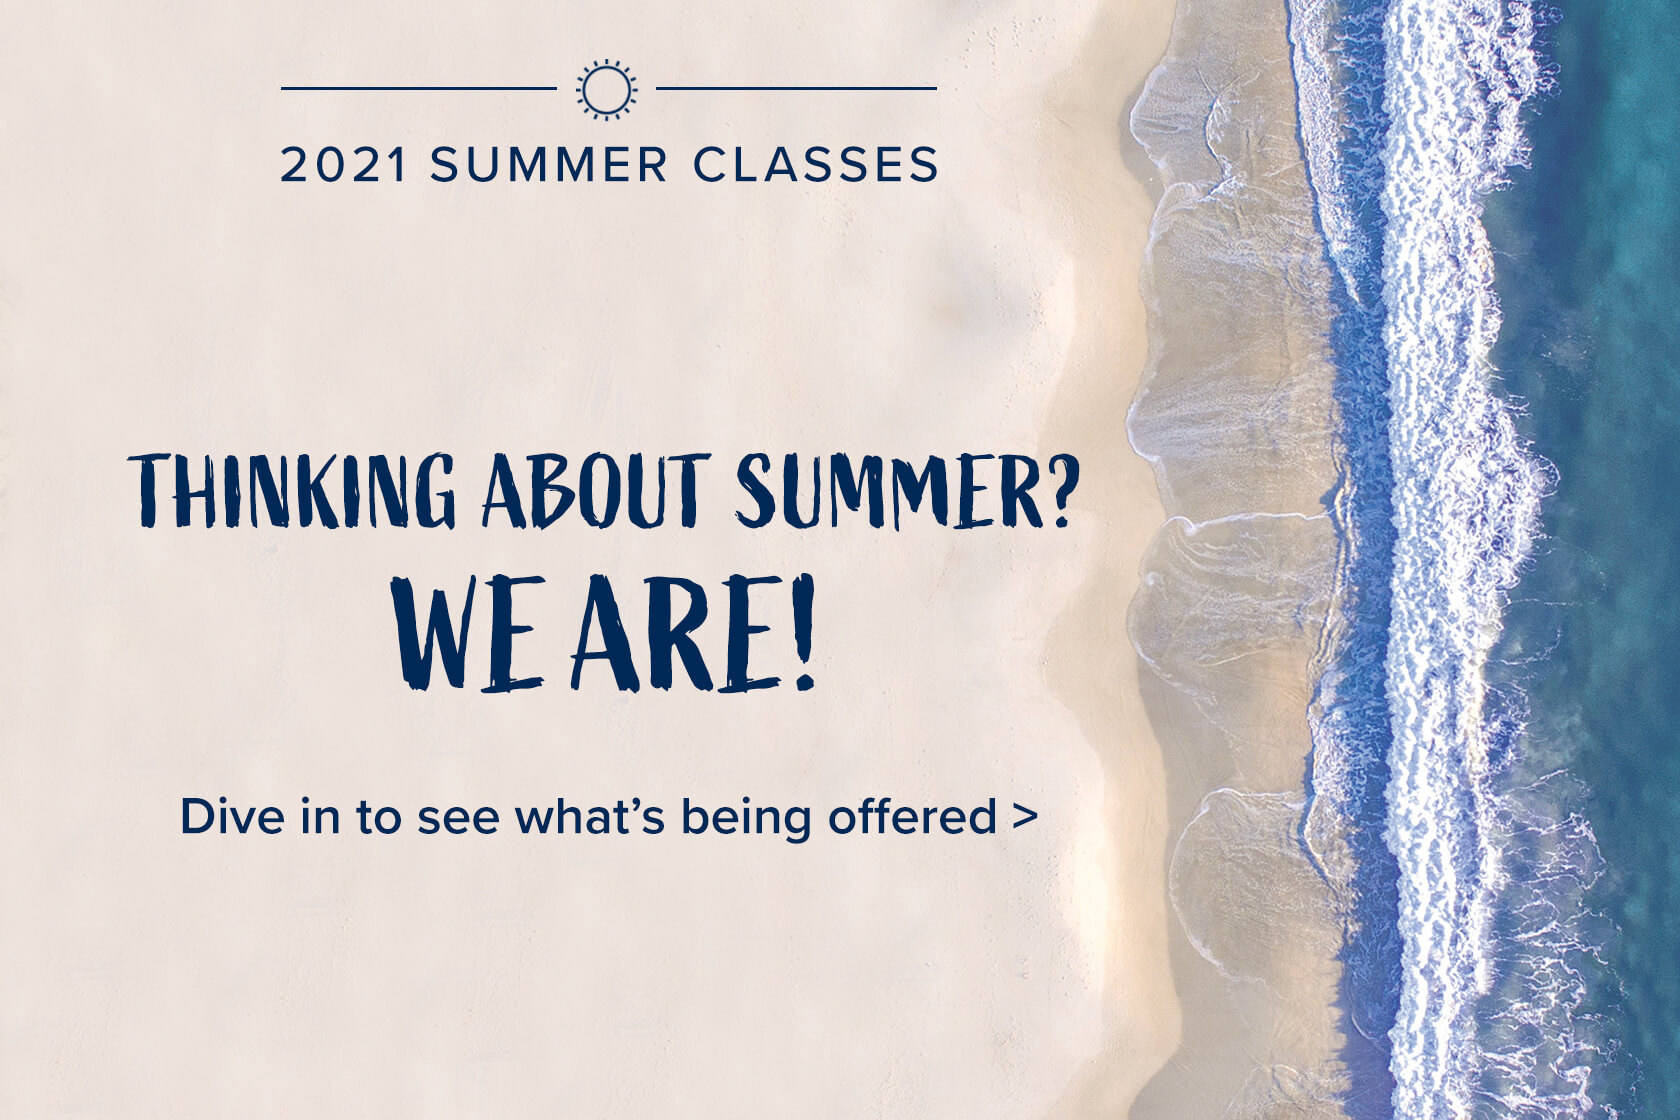 Thinking about Summer? We Are! 2021 Summer Classes: Dive in to see what's being offered.